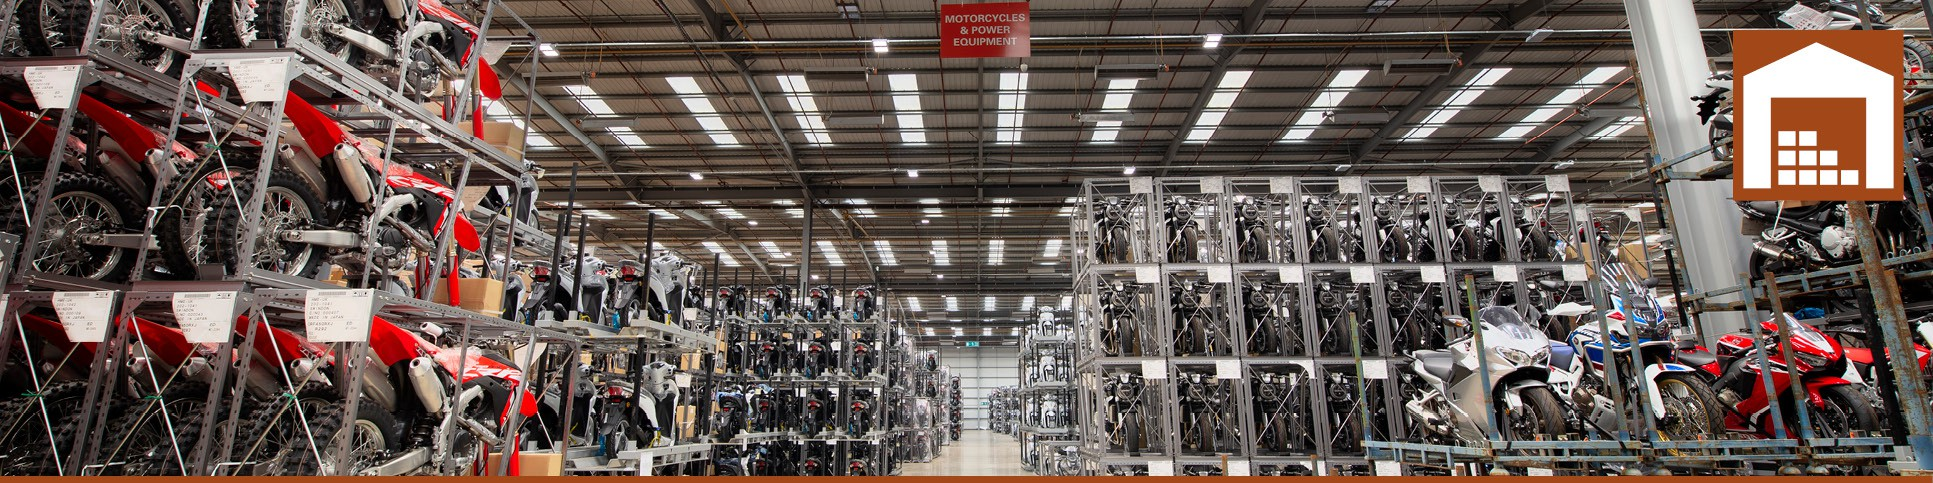 Lighting for Warehouse and Logistics Wellbeing